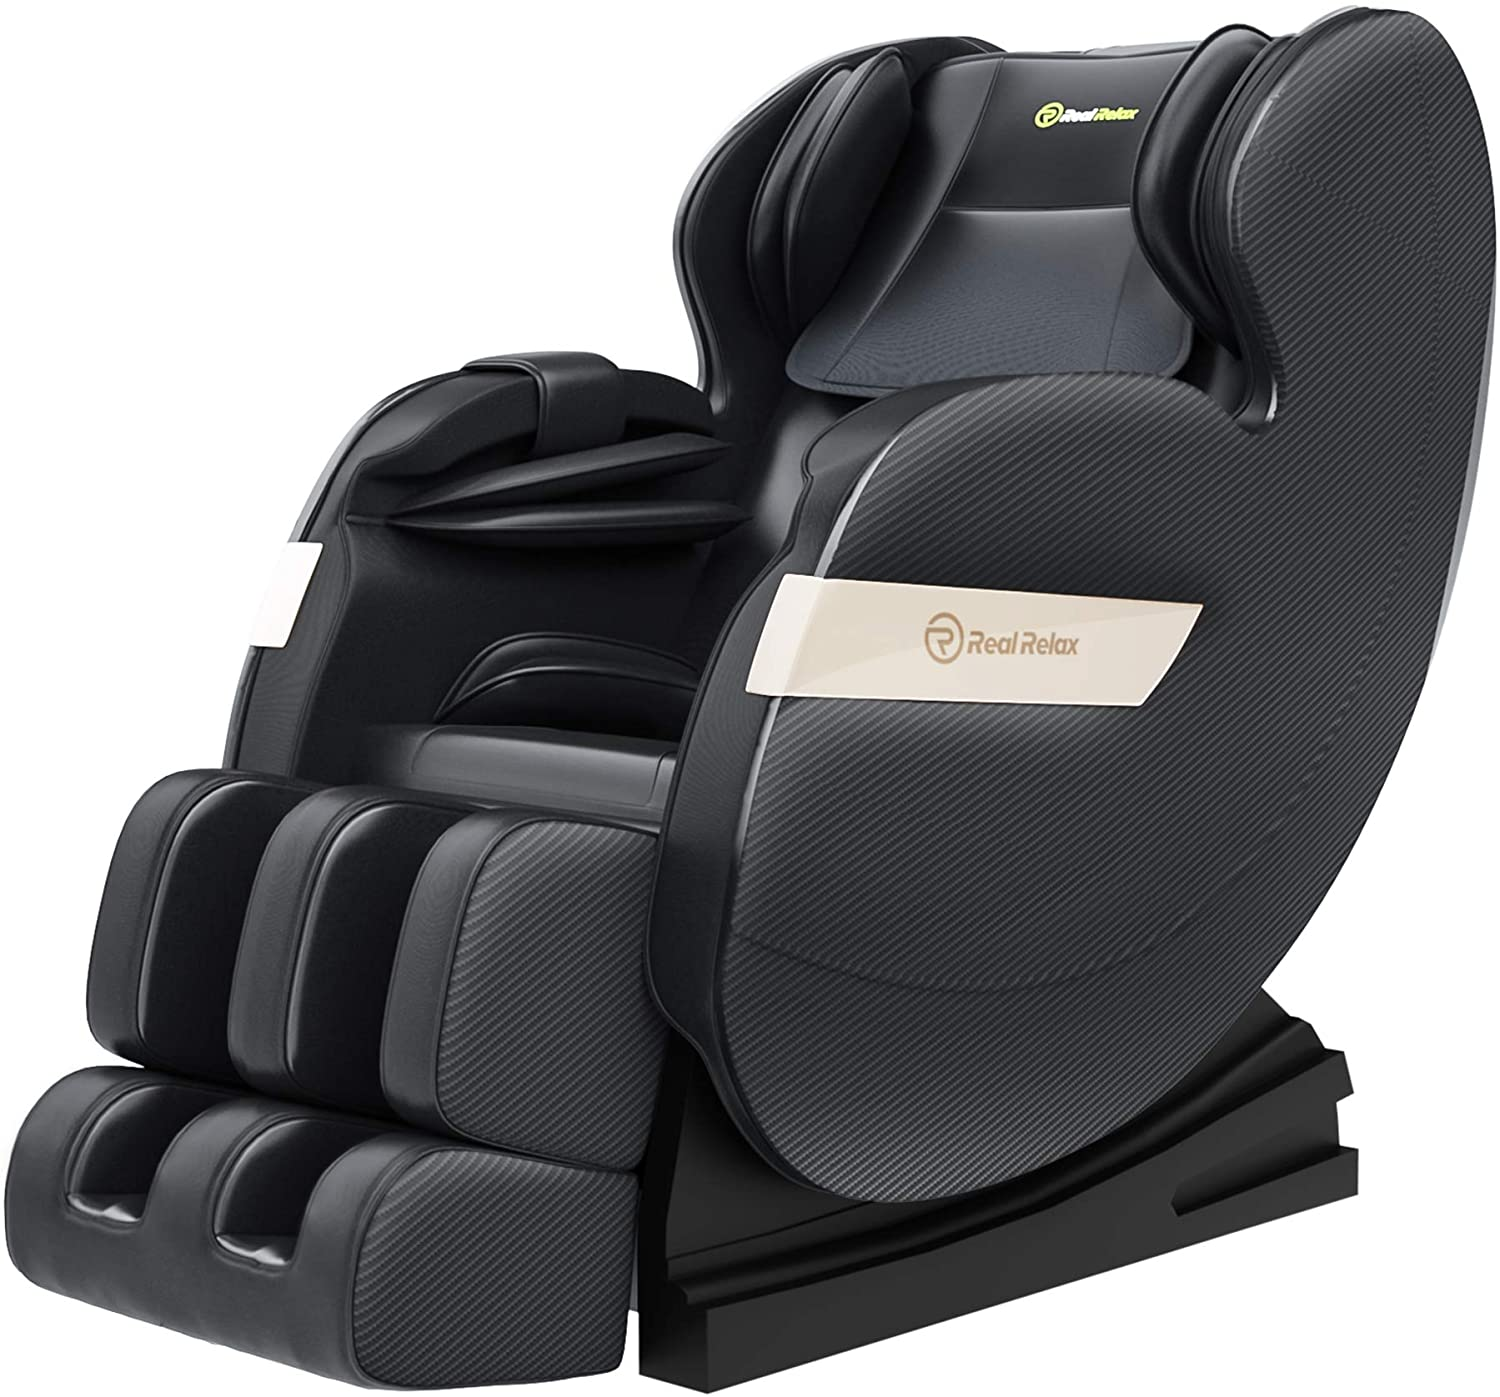 Real Relax Full Body Zero Gravity Shiatsu Massage Chair